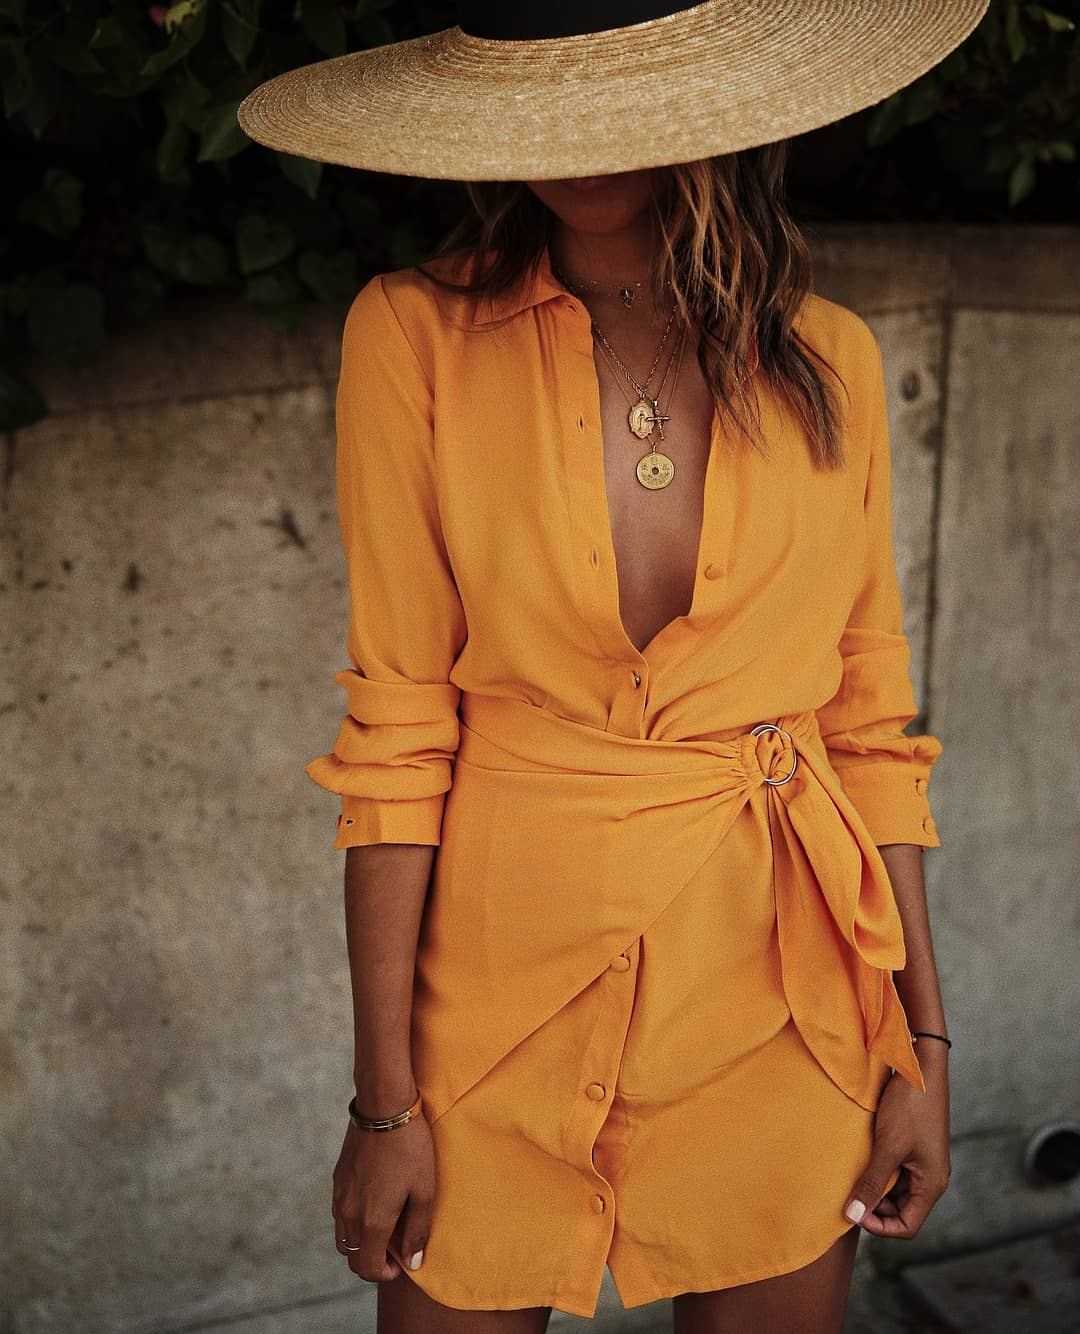 Orange Shirtdress With Wrap Detail For Summer Vacation 2019